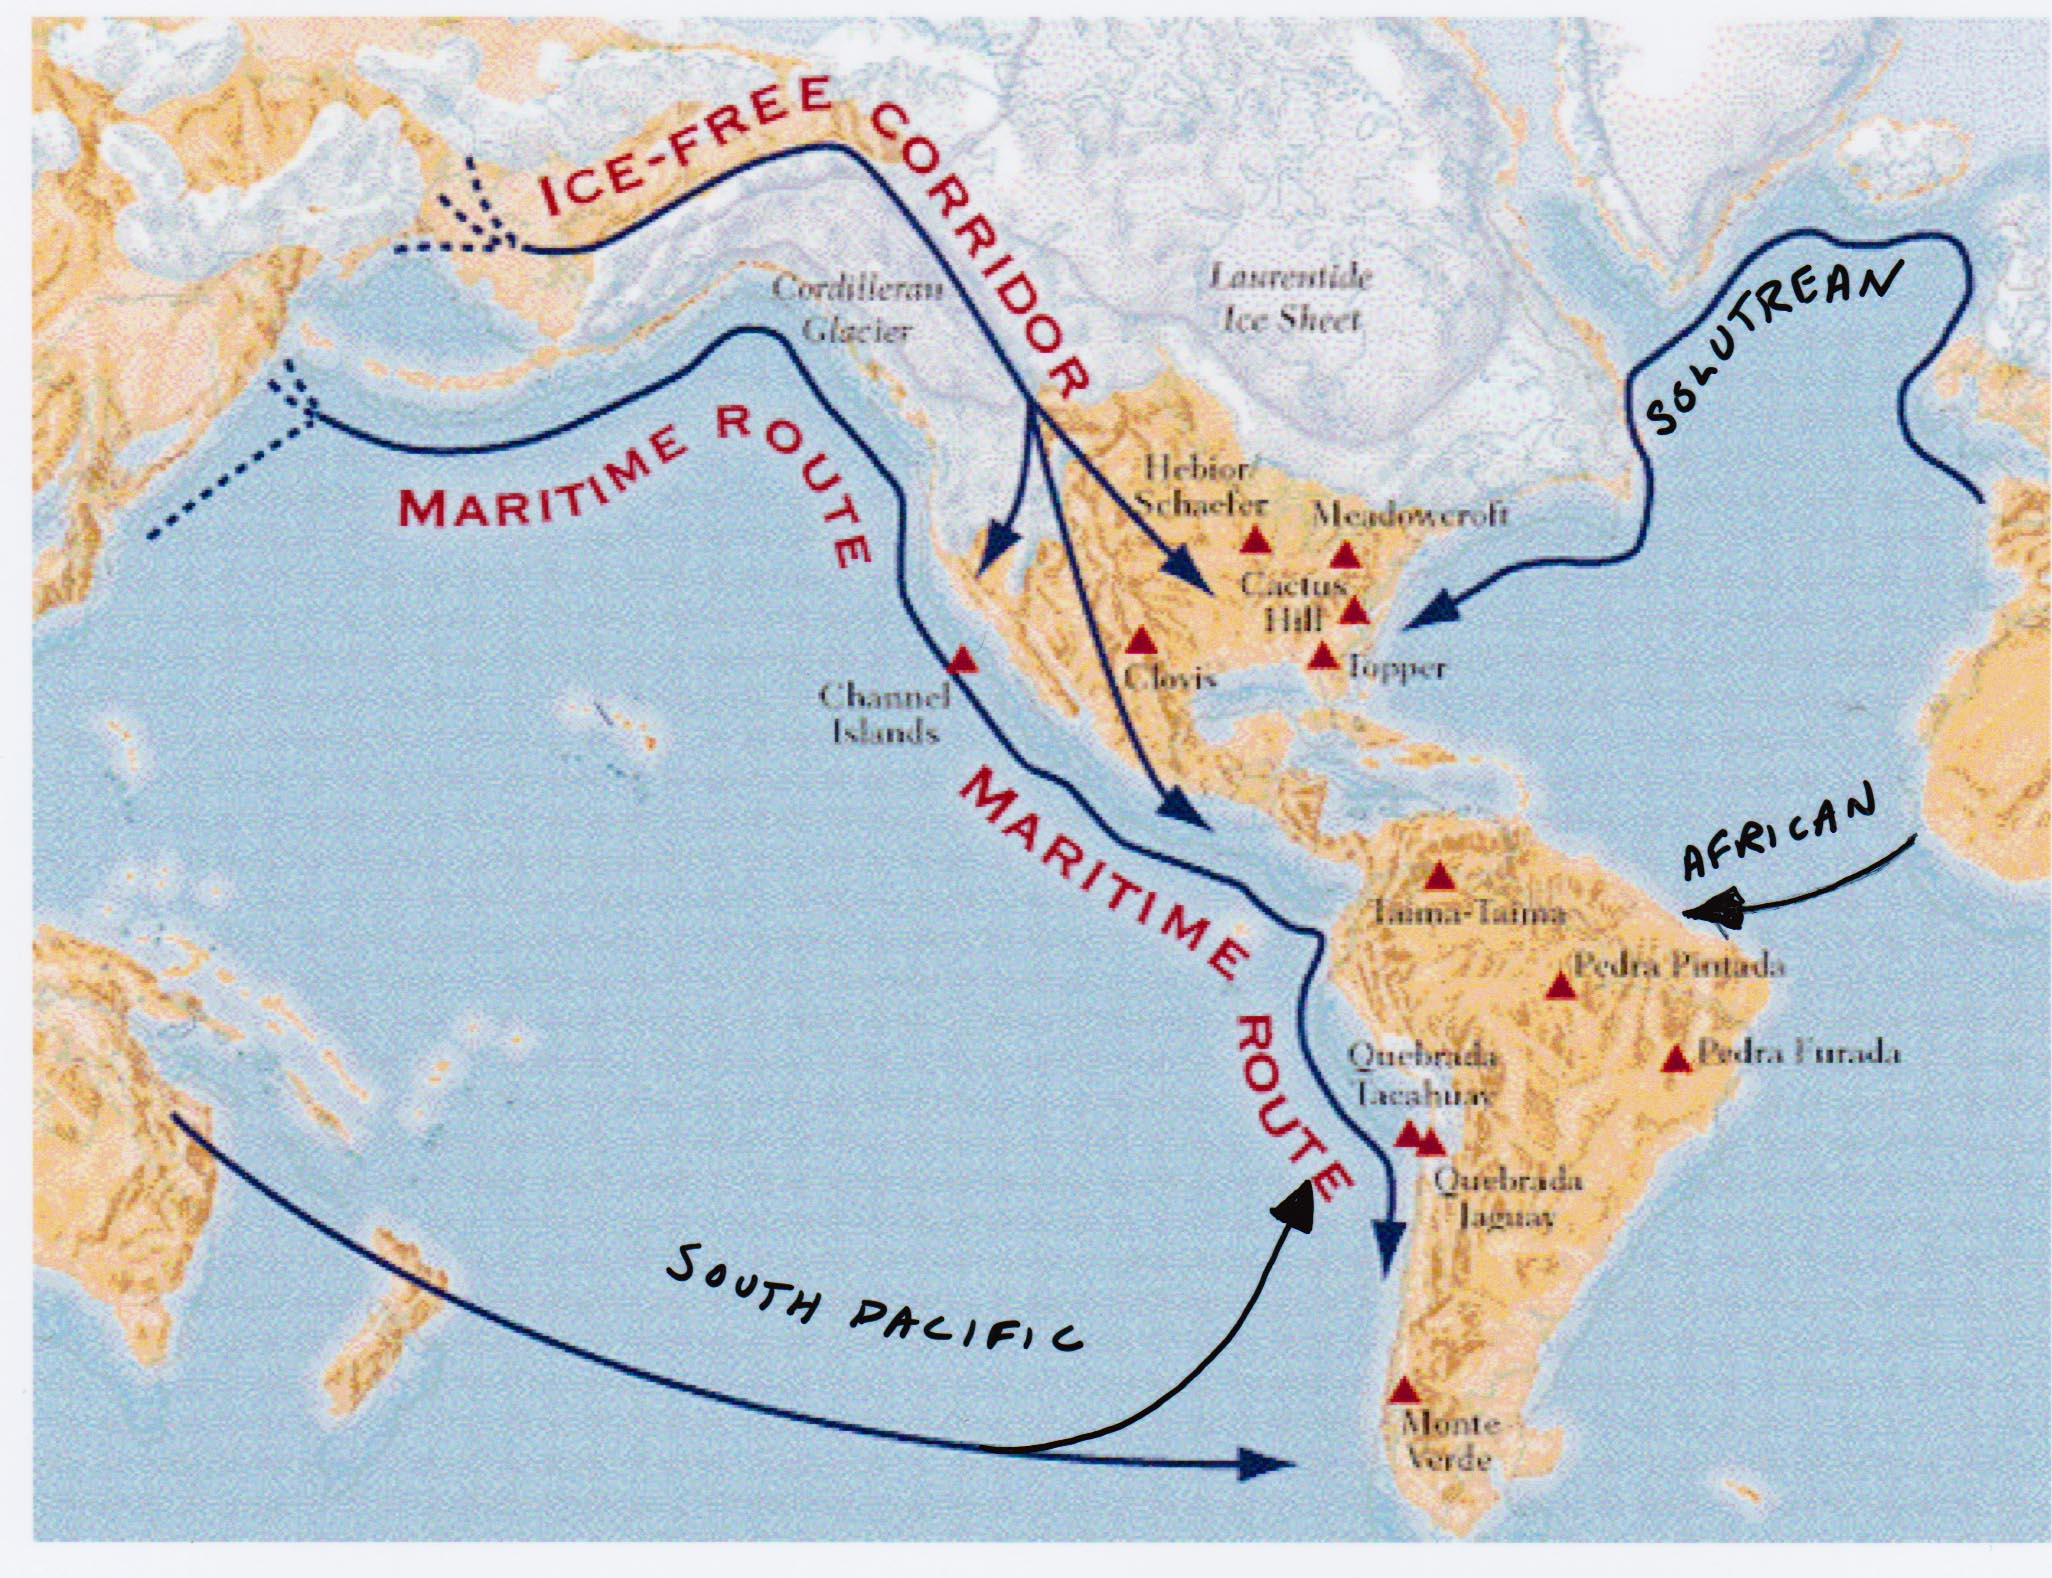 early human migration into south america